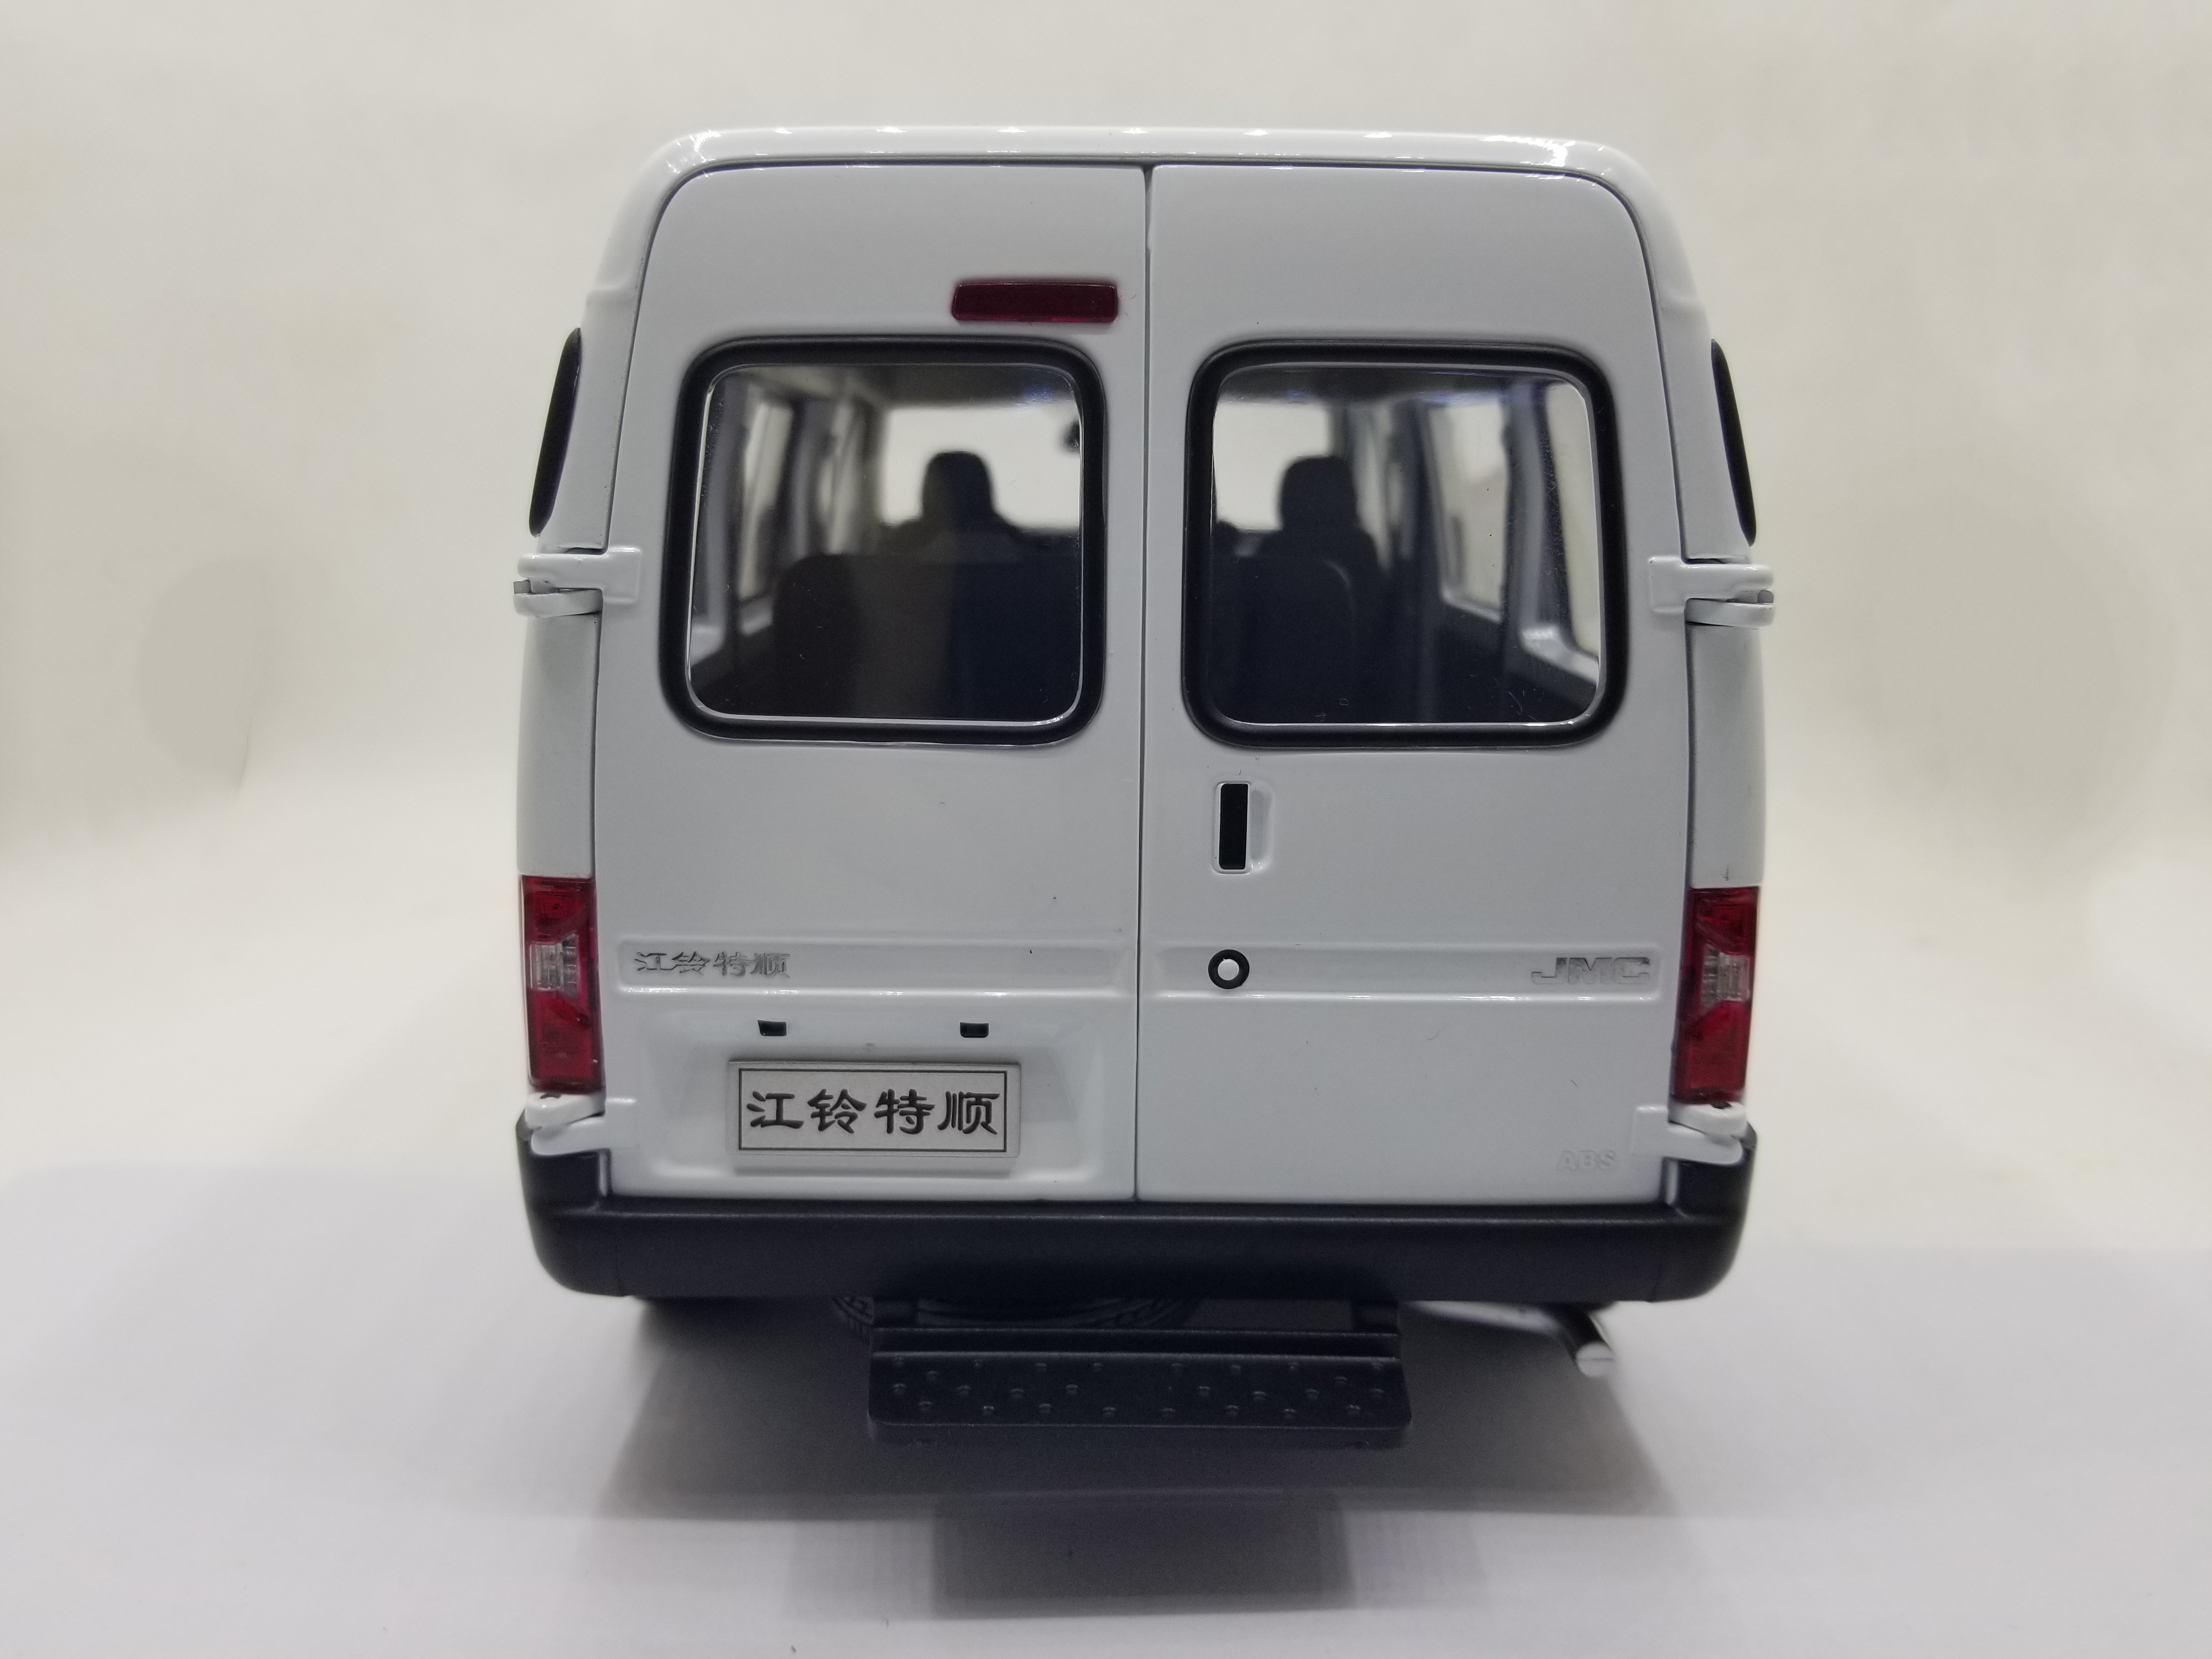 1/18 Ford JMC Teshun Transit White MPV Truck Van Alloy Toy Car, Diecast Scale Model Car, Collectible Model Car, Miniature Collection Die-cast Toy Vehicles Gifts